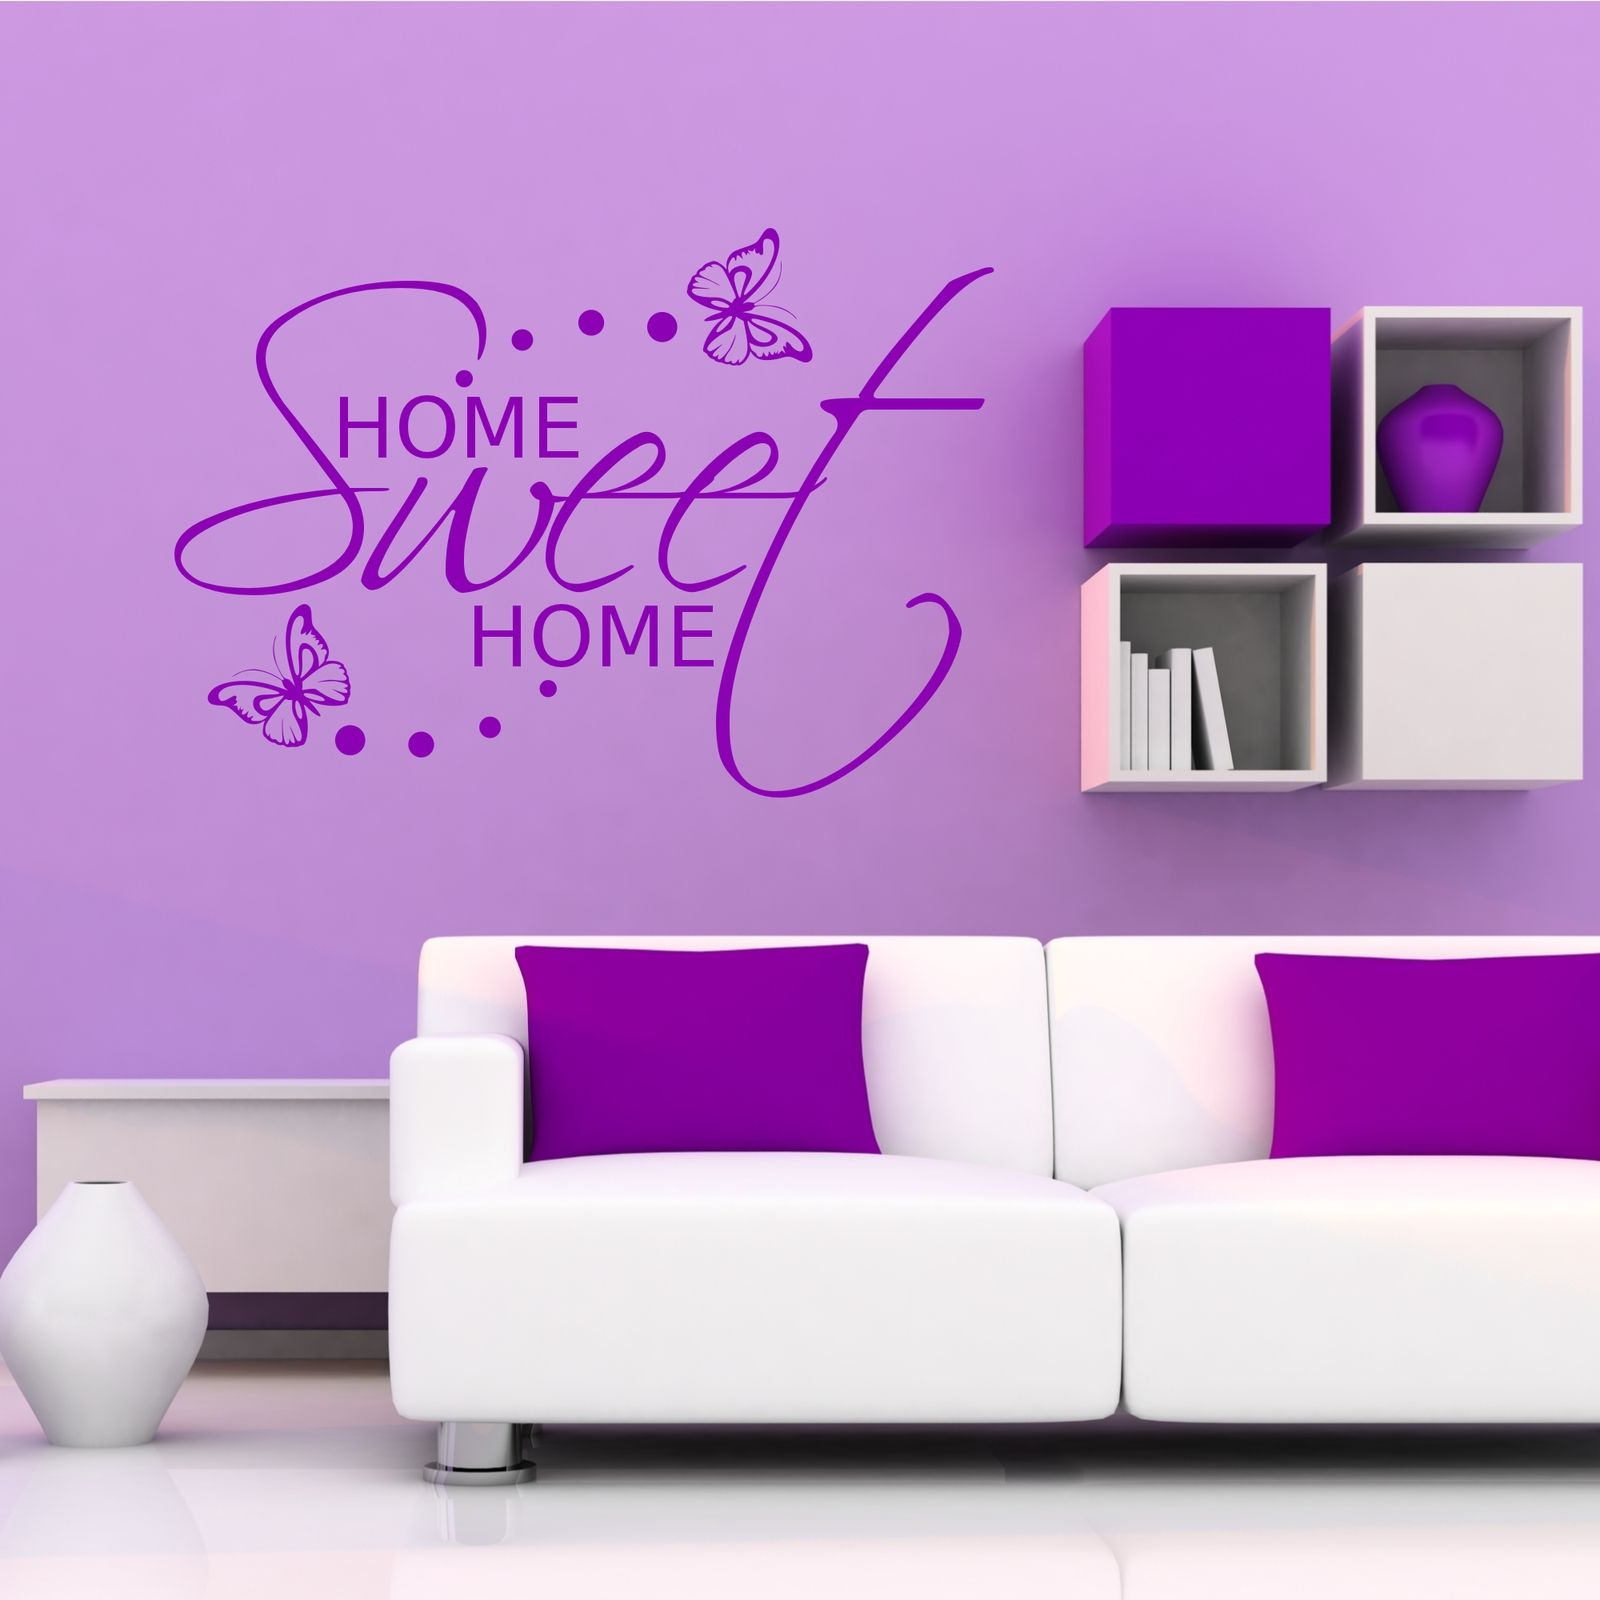 Wall stickers home sweet home - Home Sweet Home Wall Sticker Art Room Gift